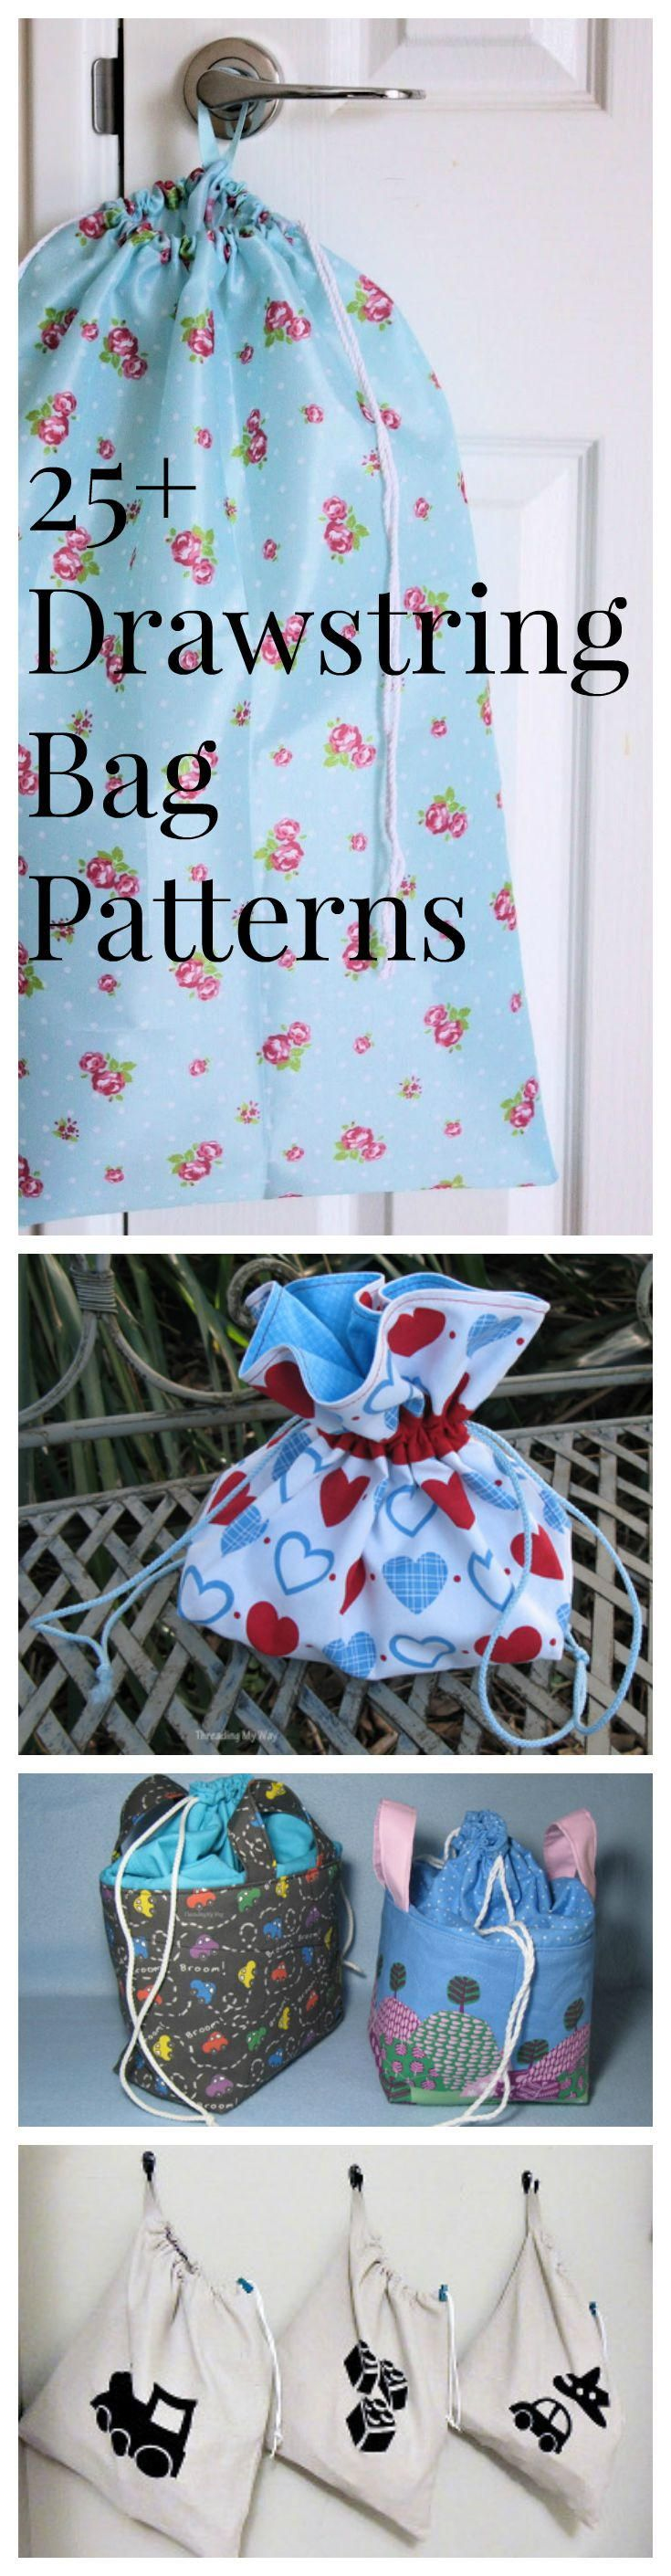 How to Make a Drawstring Bag Tutorials and Drawstring Bag Patterns | AllFreeSewing.com